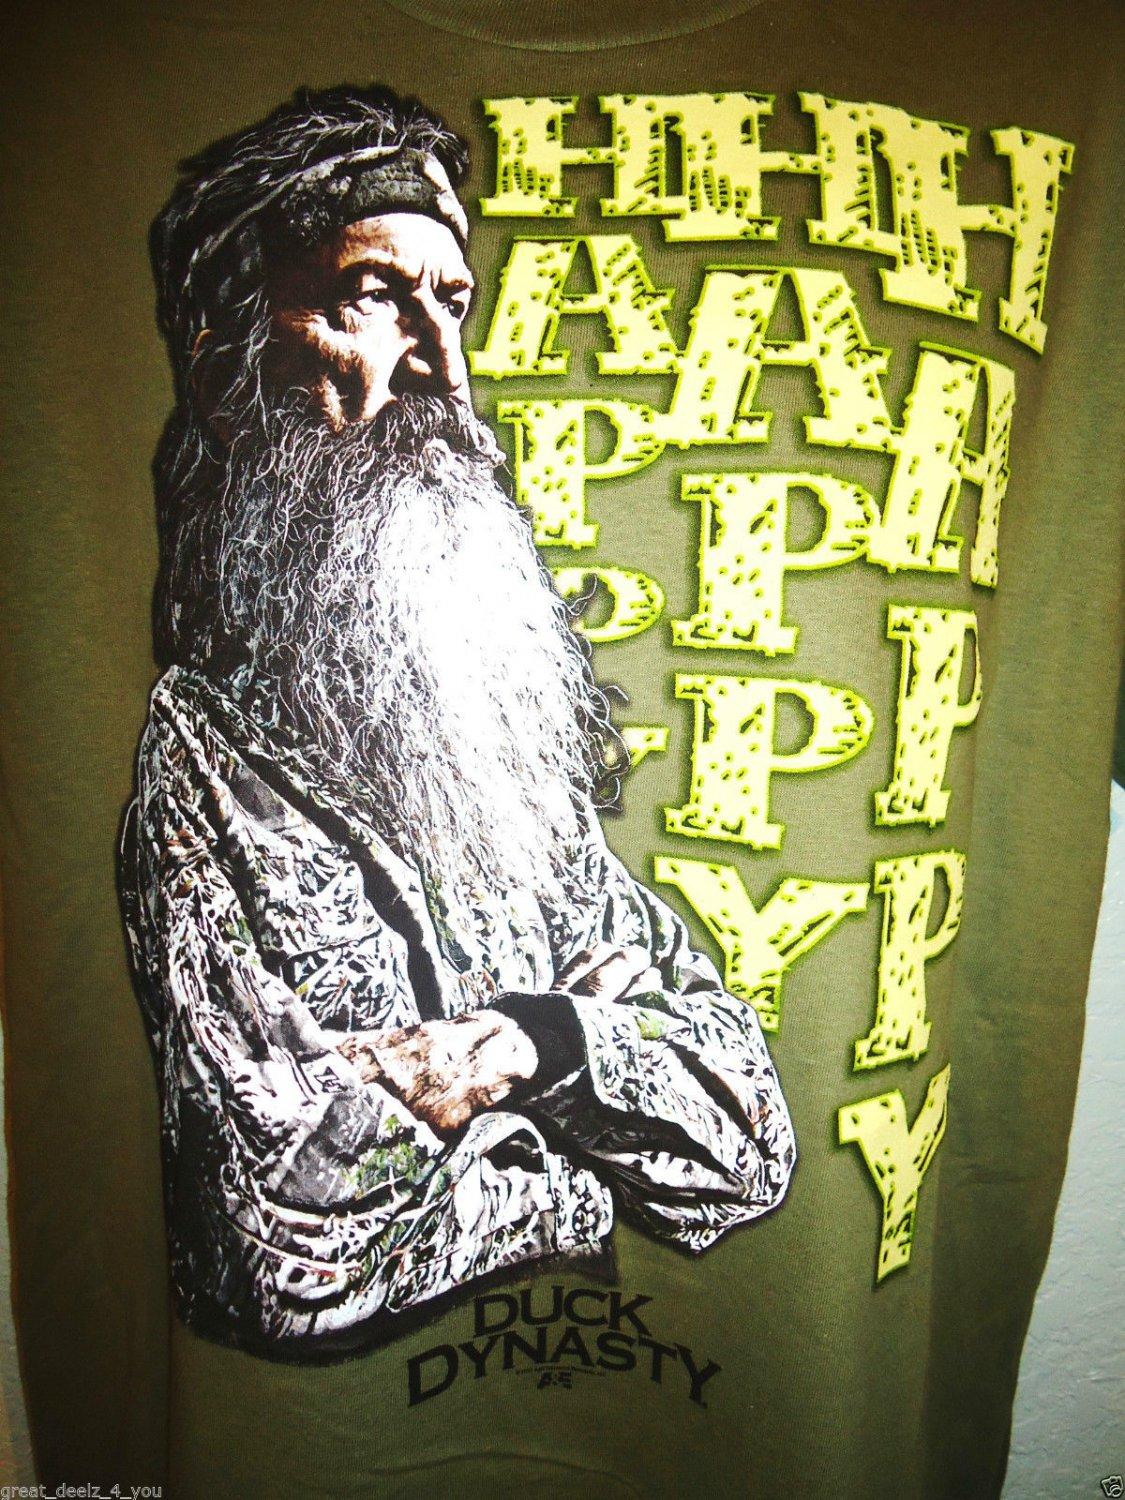 DUCK DYNASTY - HAPPY - ARMY - GREEN - T-SHIRT - TEE - BRAND NEW - A&E - LARGE